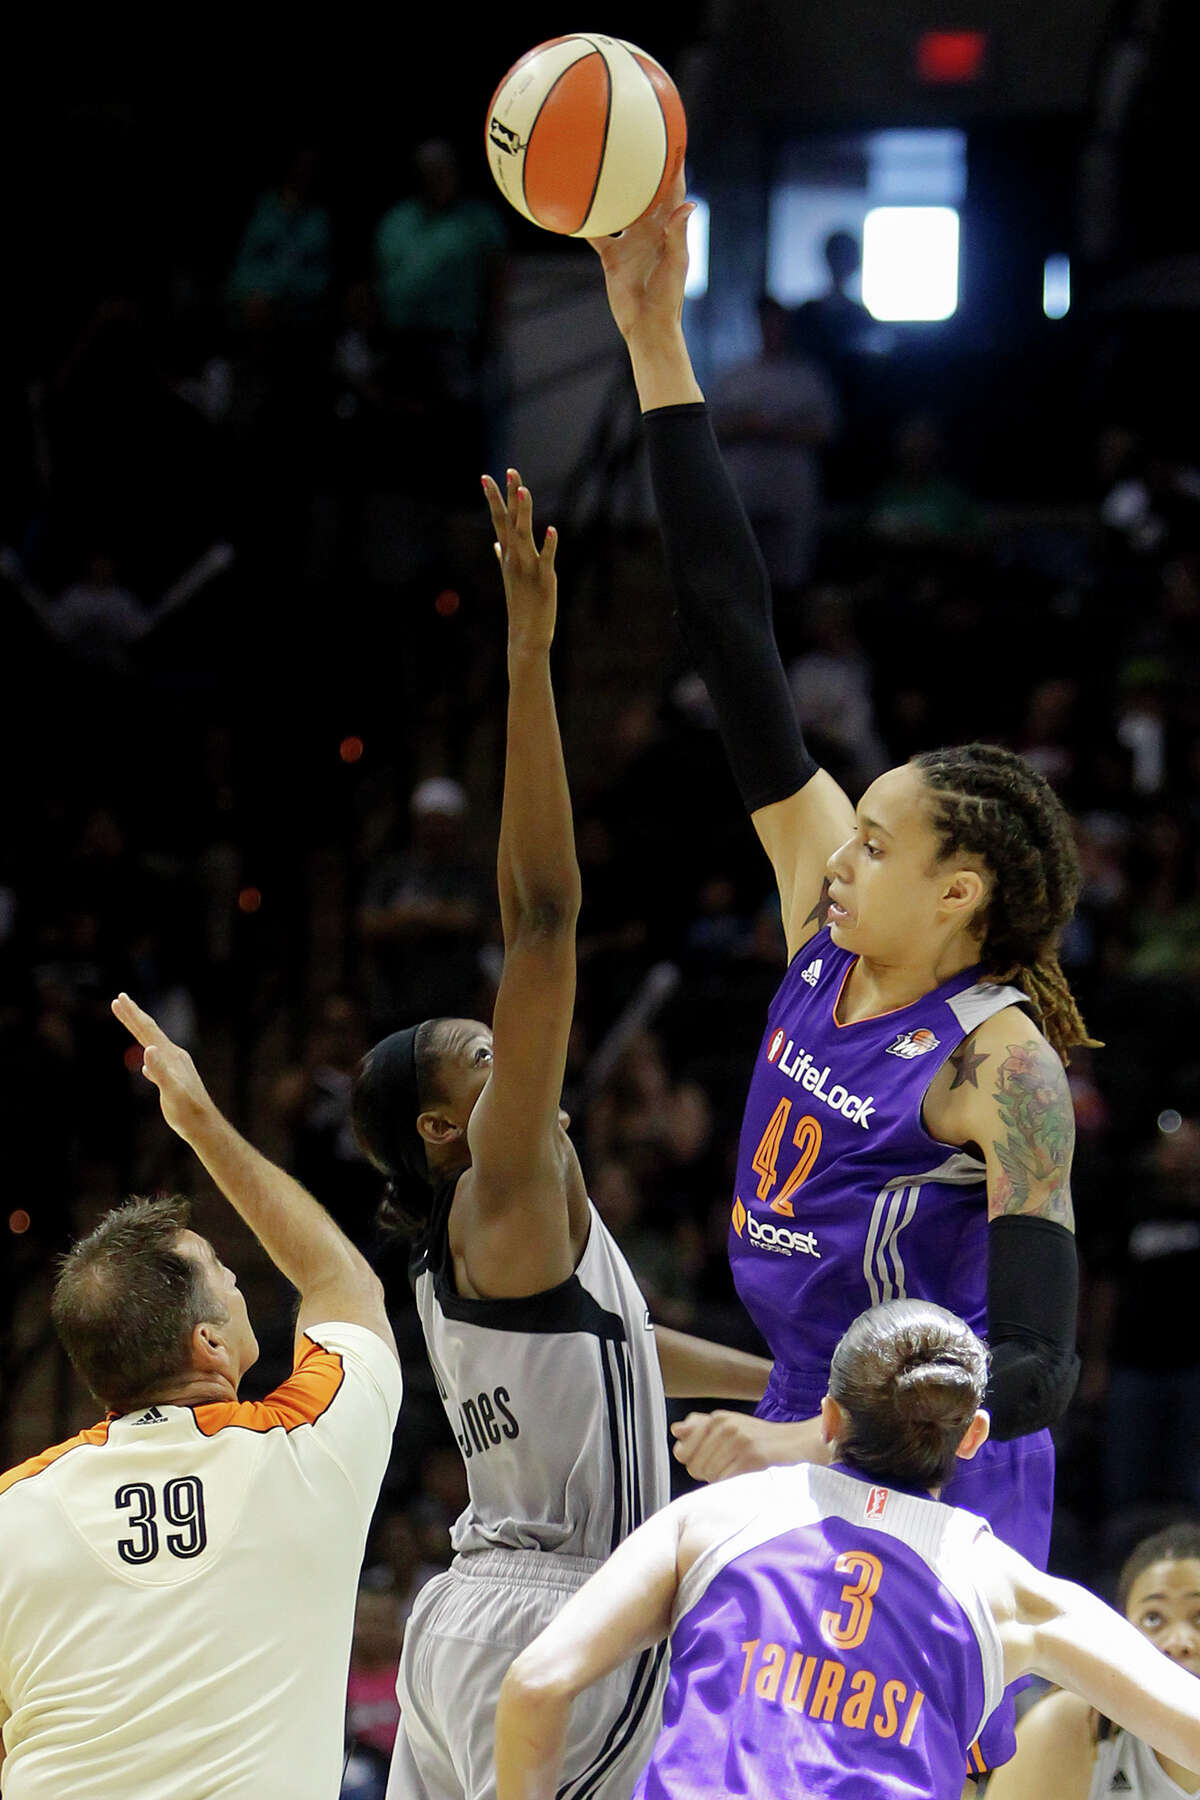 Brittney Griner (right) of Phoenix controls the opening tip in the Silver Stars game with the Phoenix Mercury at the AT&T Center on Tuesday, June 25, 2013. The game was former Baylor standout Brittney Griner's first trip to play in her home state. Phoenix won the game 83-77. MARVIN PFEIFFER/ mpfeiffer@express-news.net